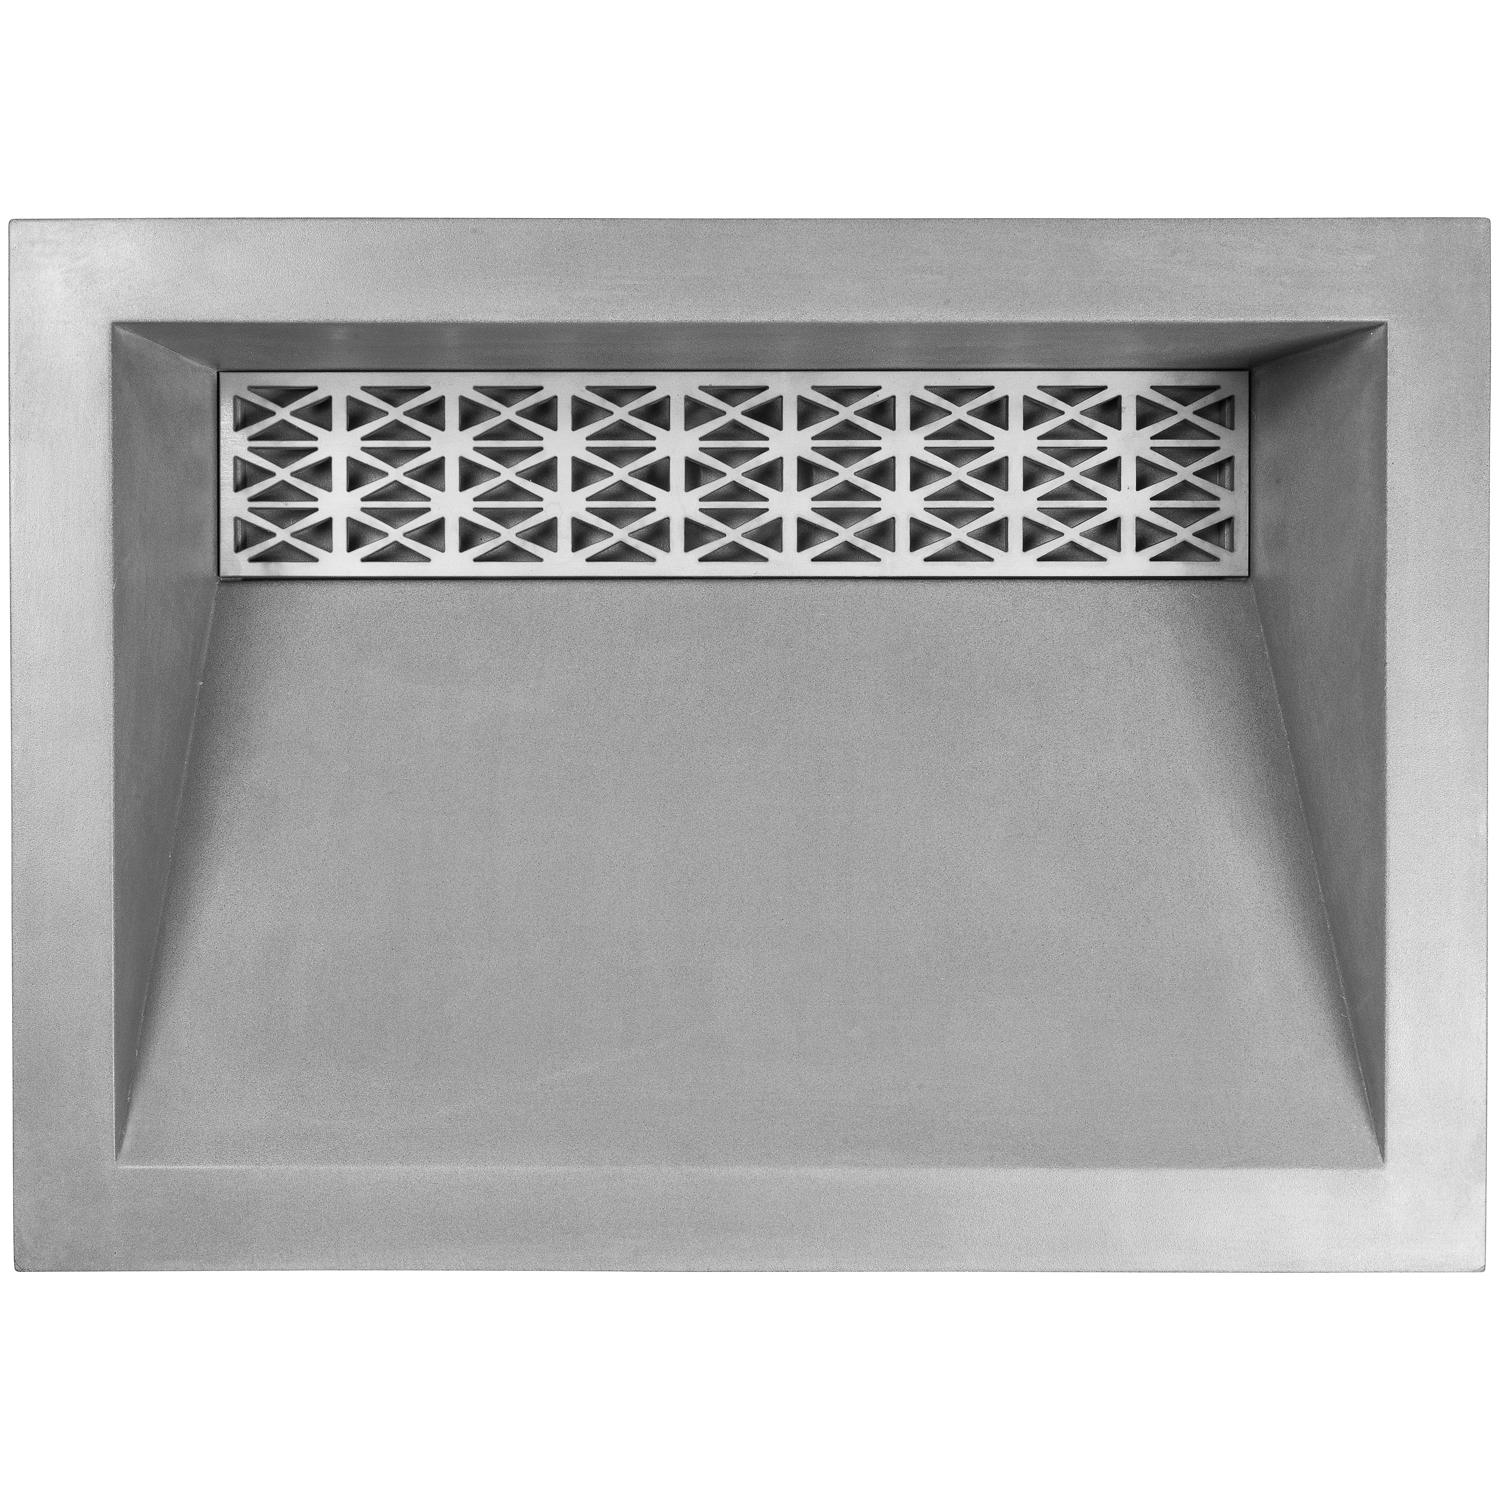 Copy of AC01DI G Shown with optional GC002 Spoke Grate SS (Satin Stainless Steel)